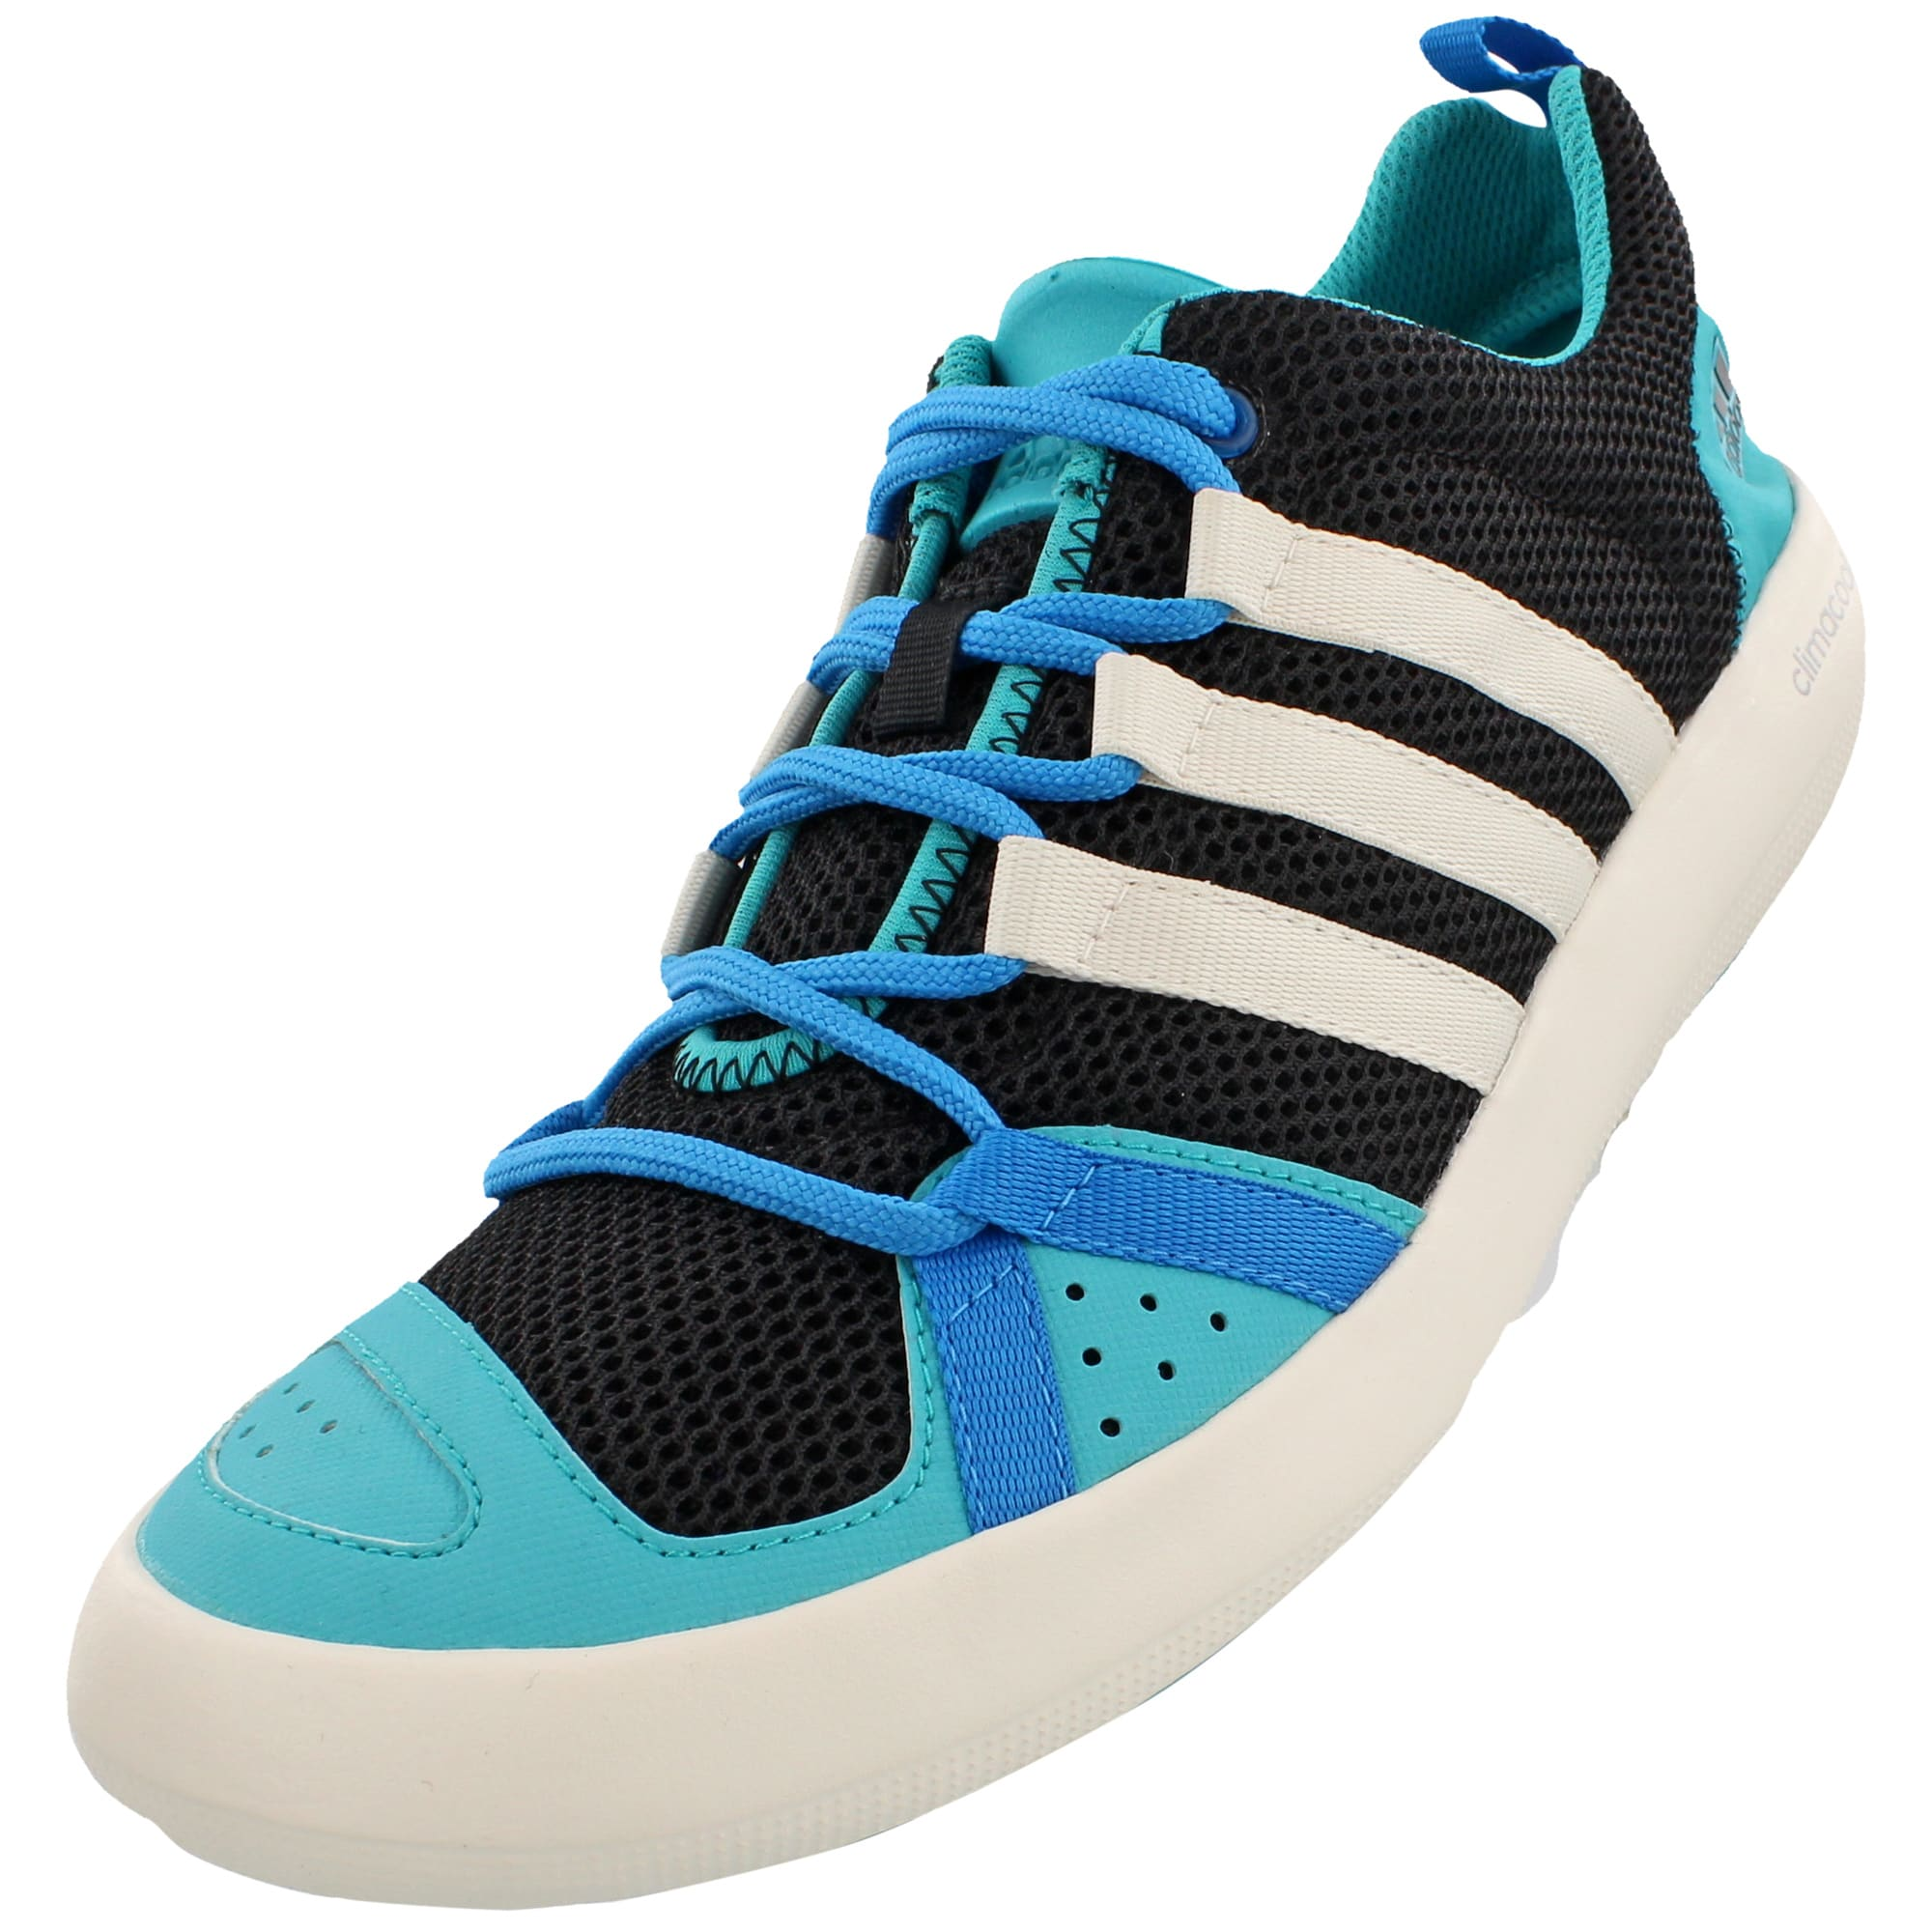 on sale adidas climacool boat lace water shoes up to 45 off. Black Bedroom Furniture Sets. Home Design Ideas